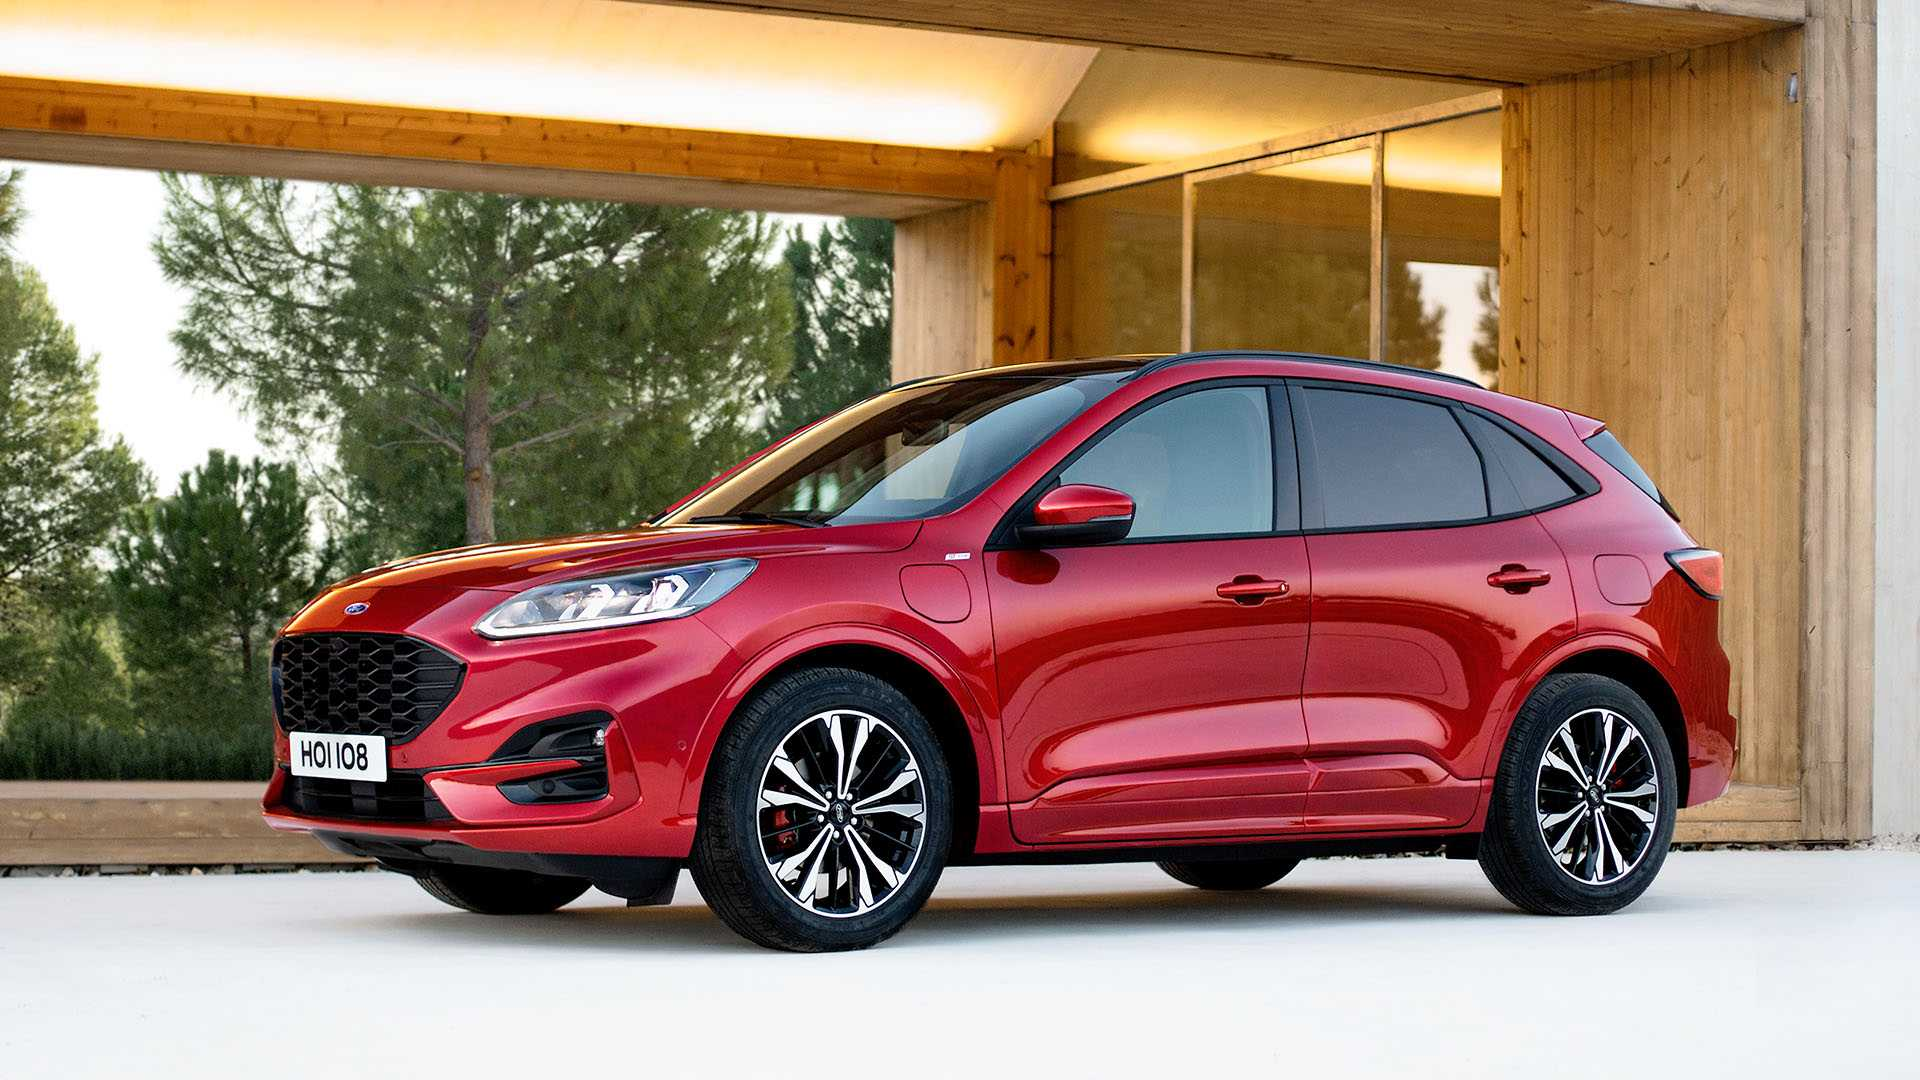 92 Best Review Ford Kuga 2020 Uk Performance and New Engine for Ford Kuga 2020 Uk